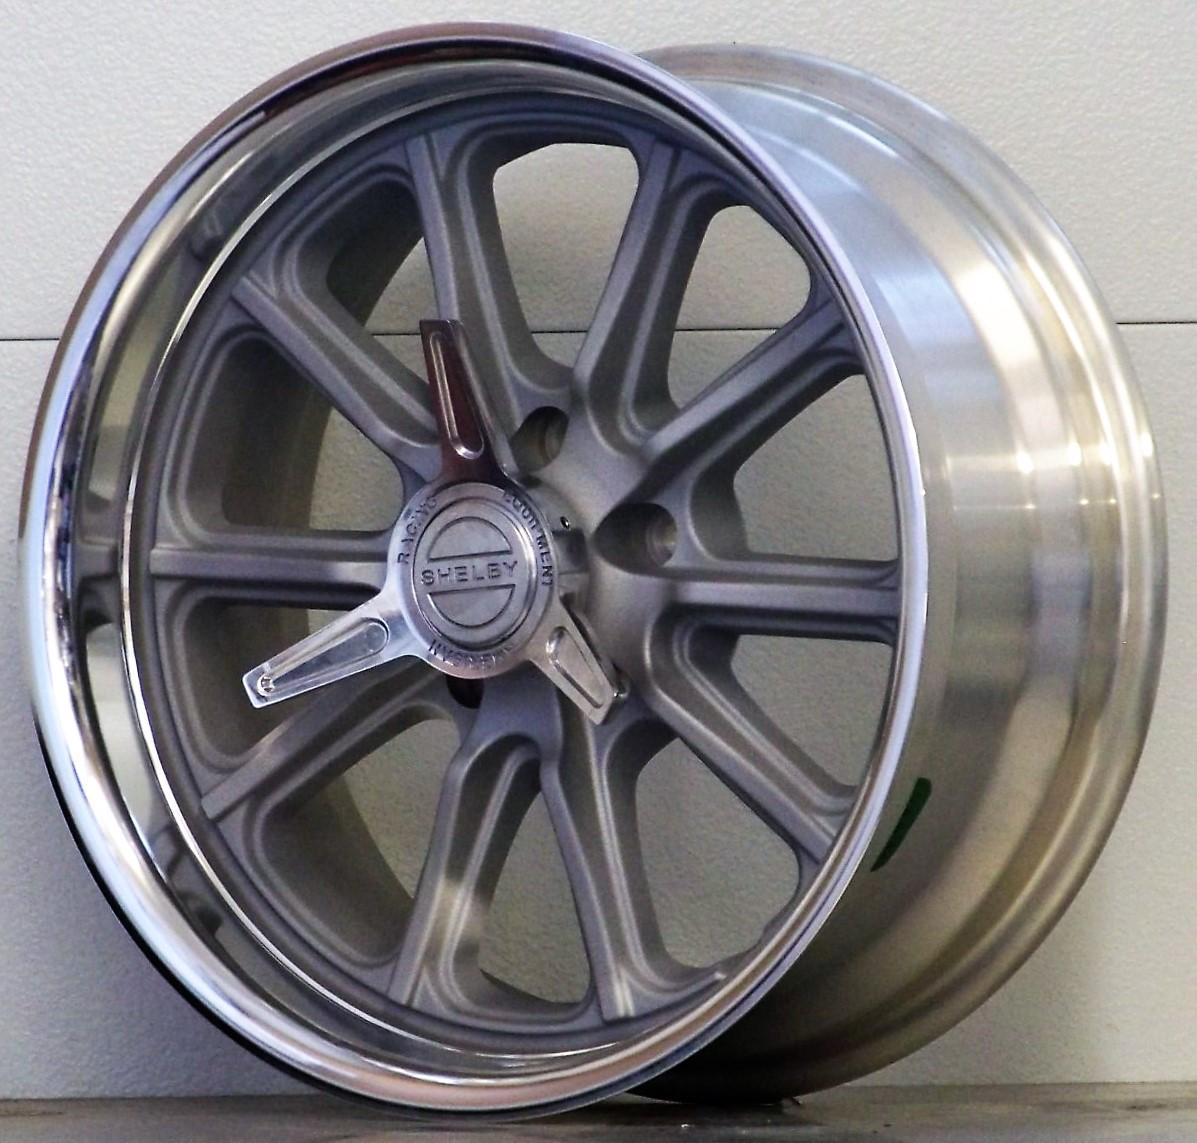 1965 1966 Vintage Wheels Mustang Hot Rod And Muscle Car 66 Wiring 17s 507s Silver Set Of 4 For 65 73